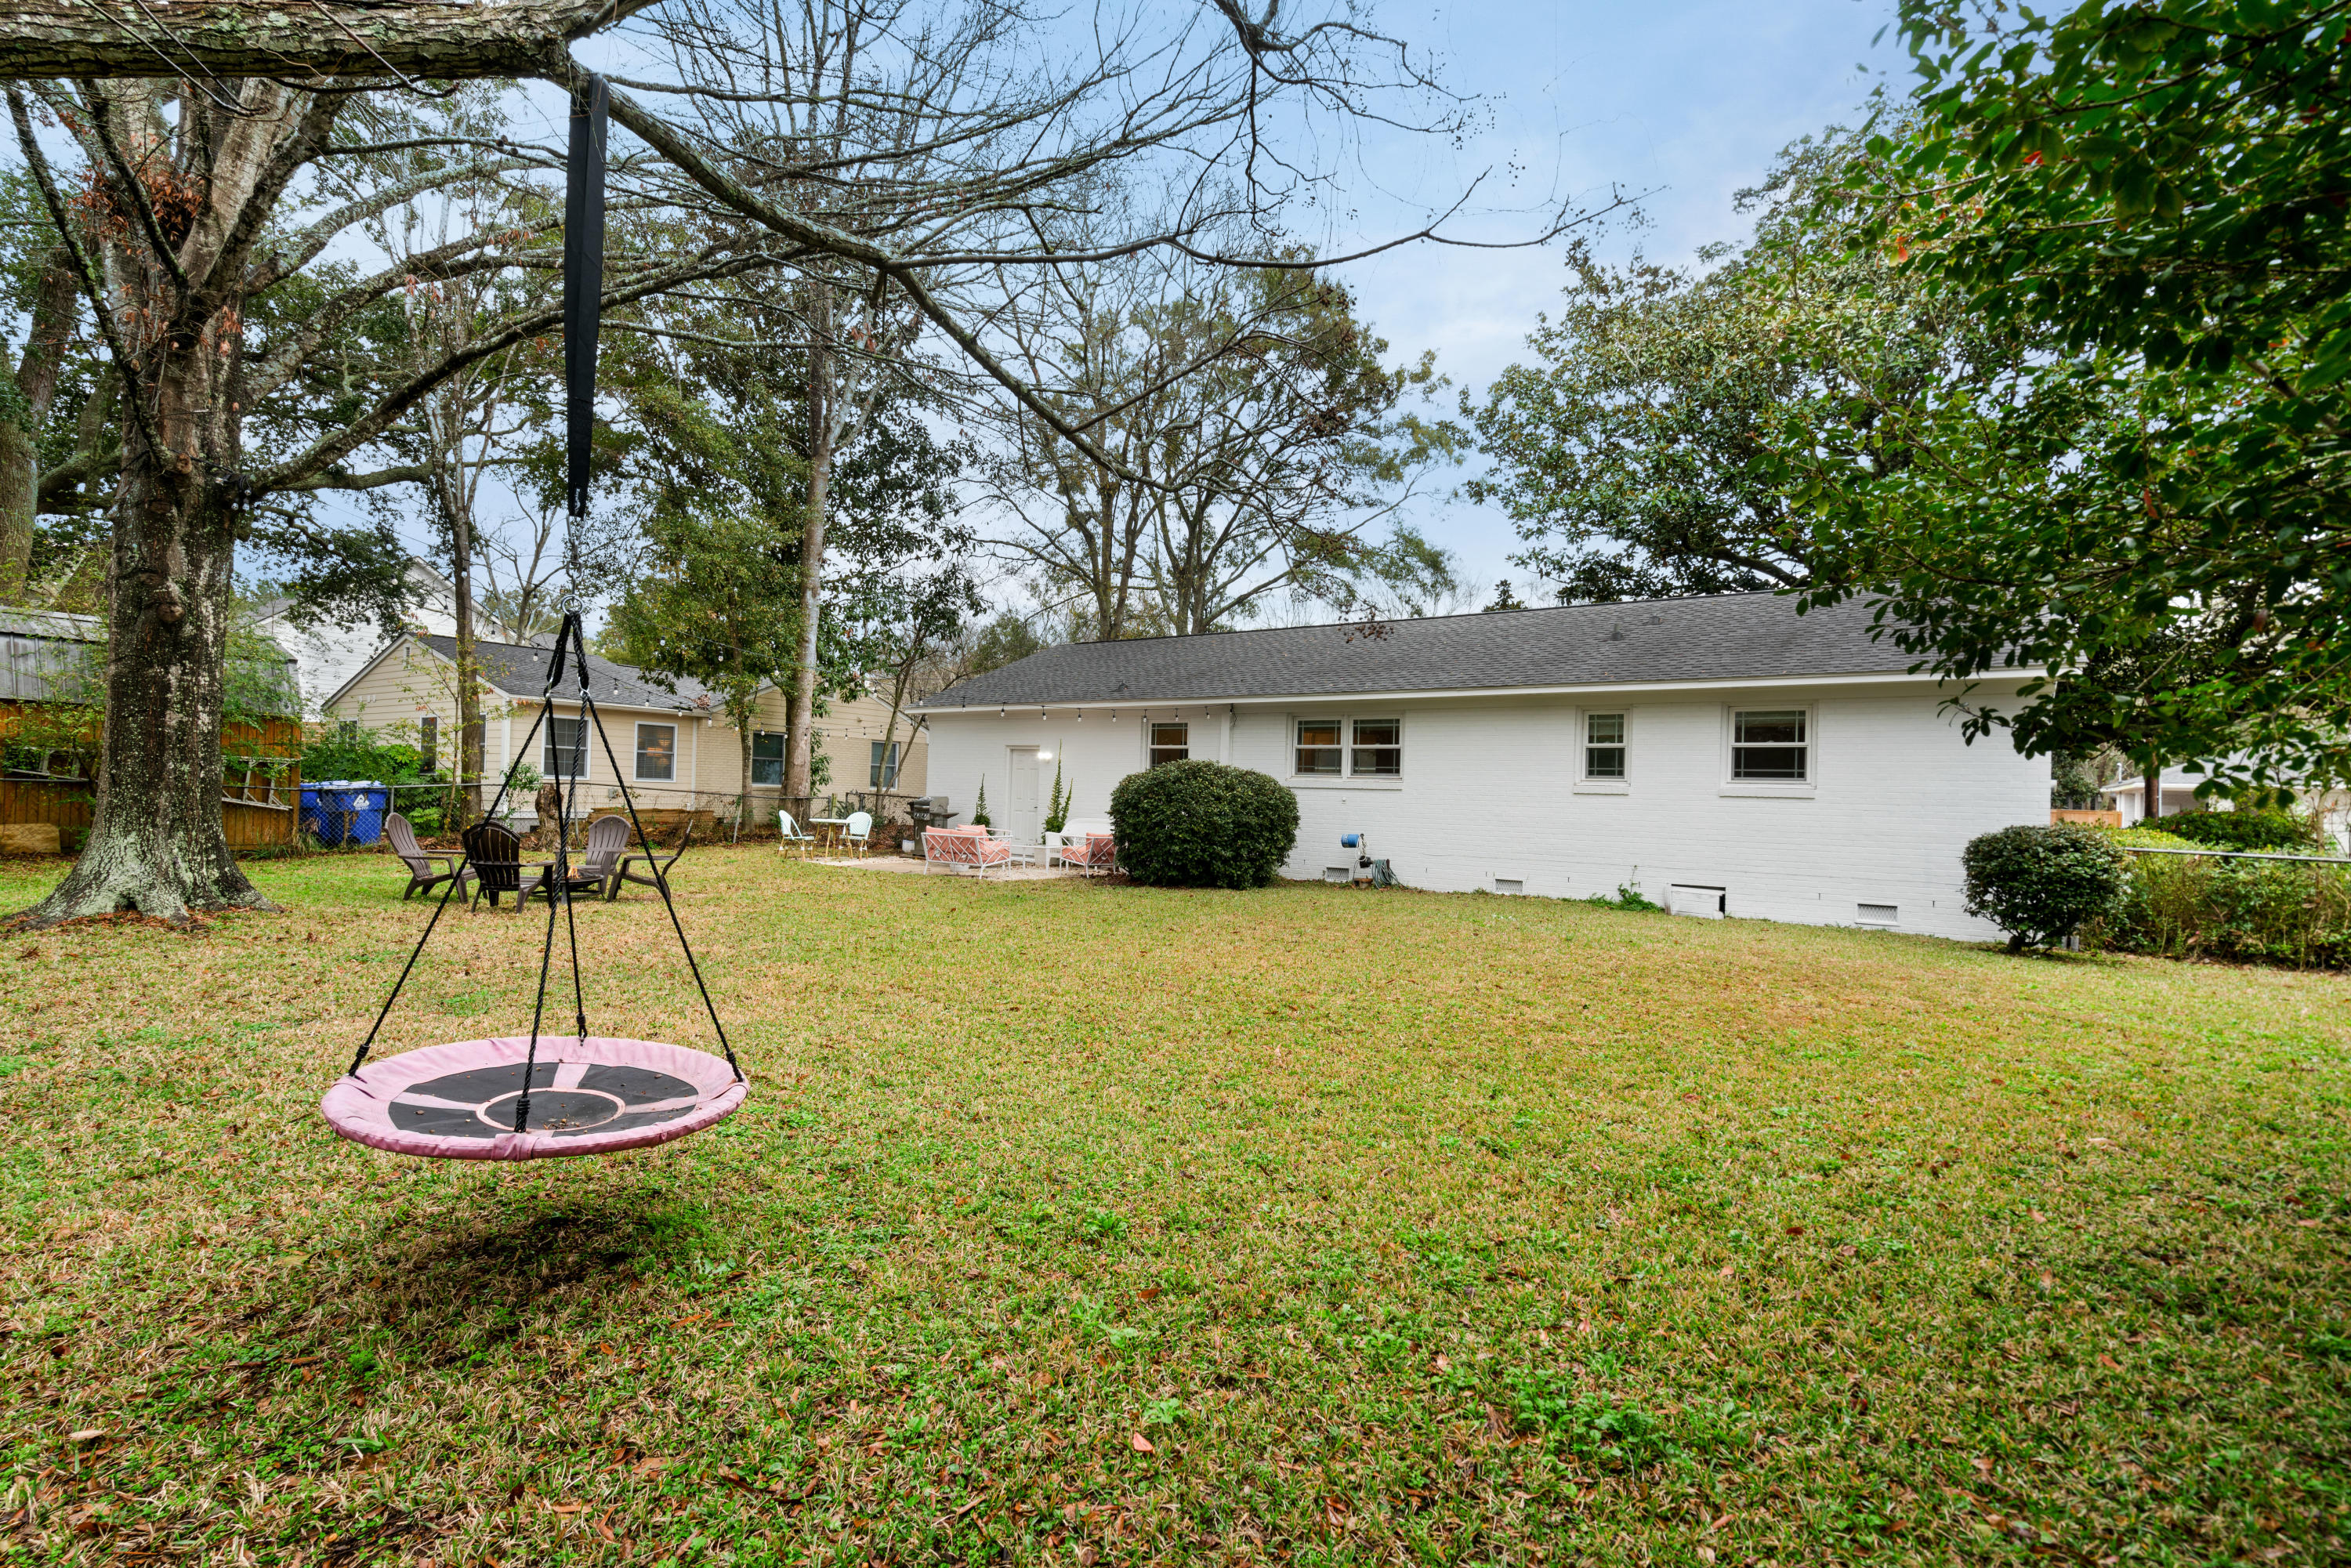 Old Mt Pleasant Homes For Sale - 1463 Mataoka, Mount Pleasant, SC - 3